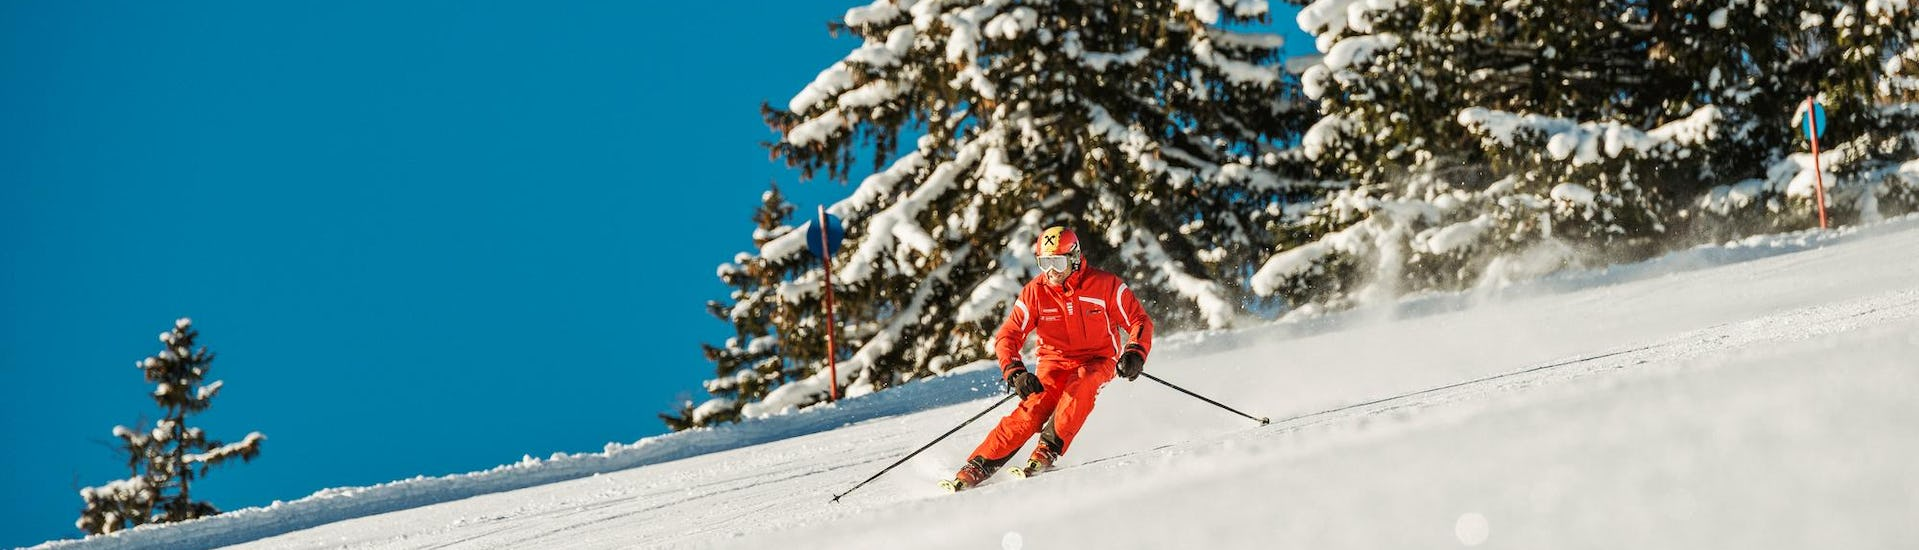 Ski Lessons for Teens & Adults - Beginner